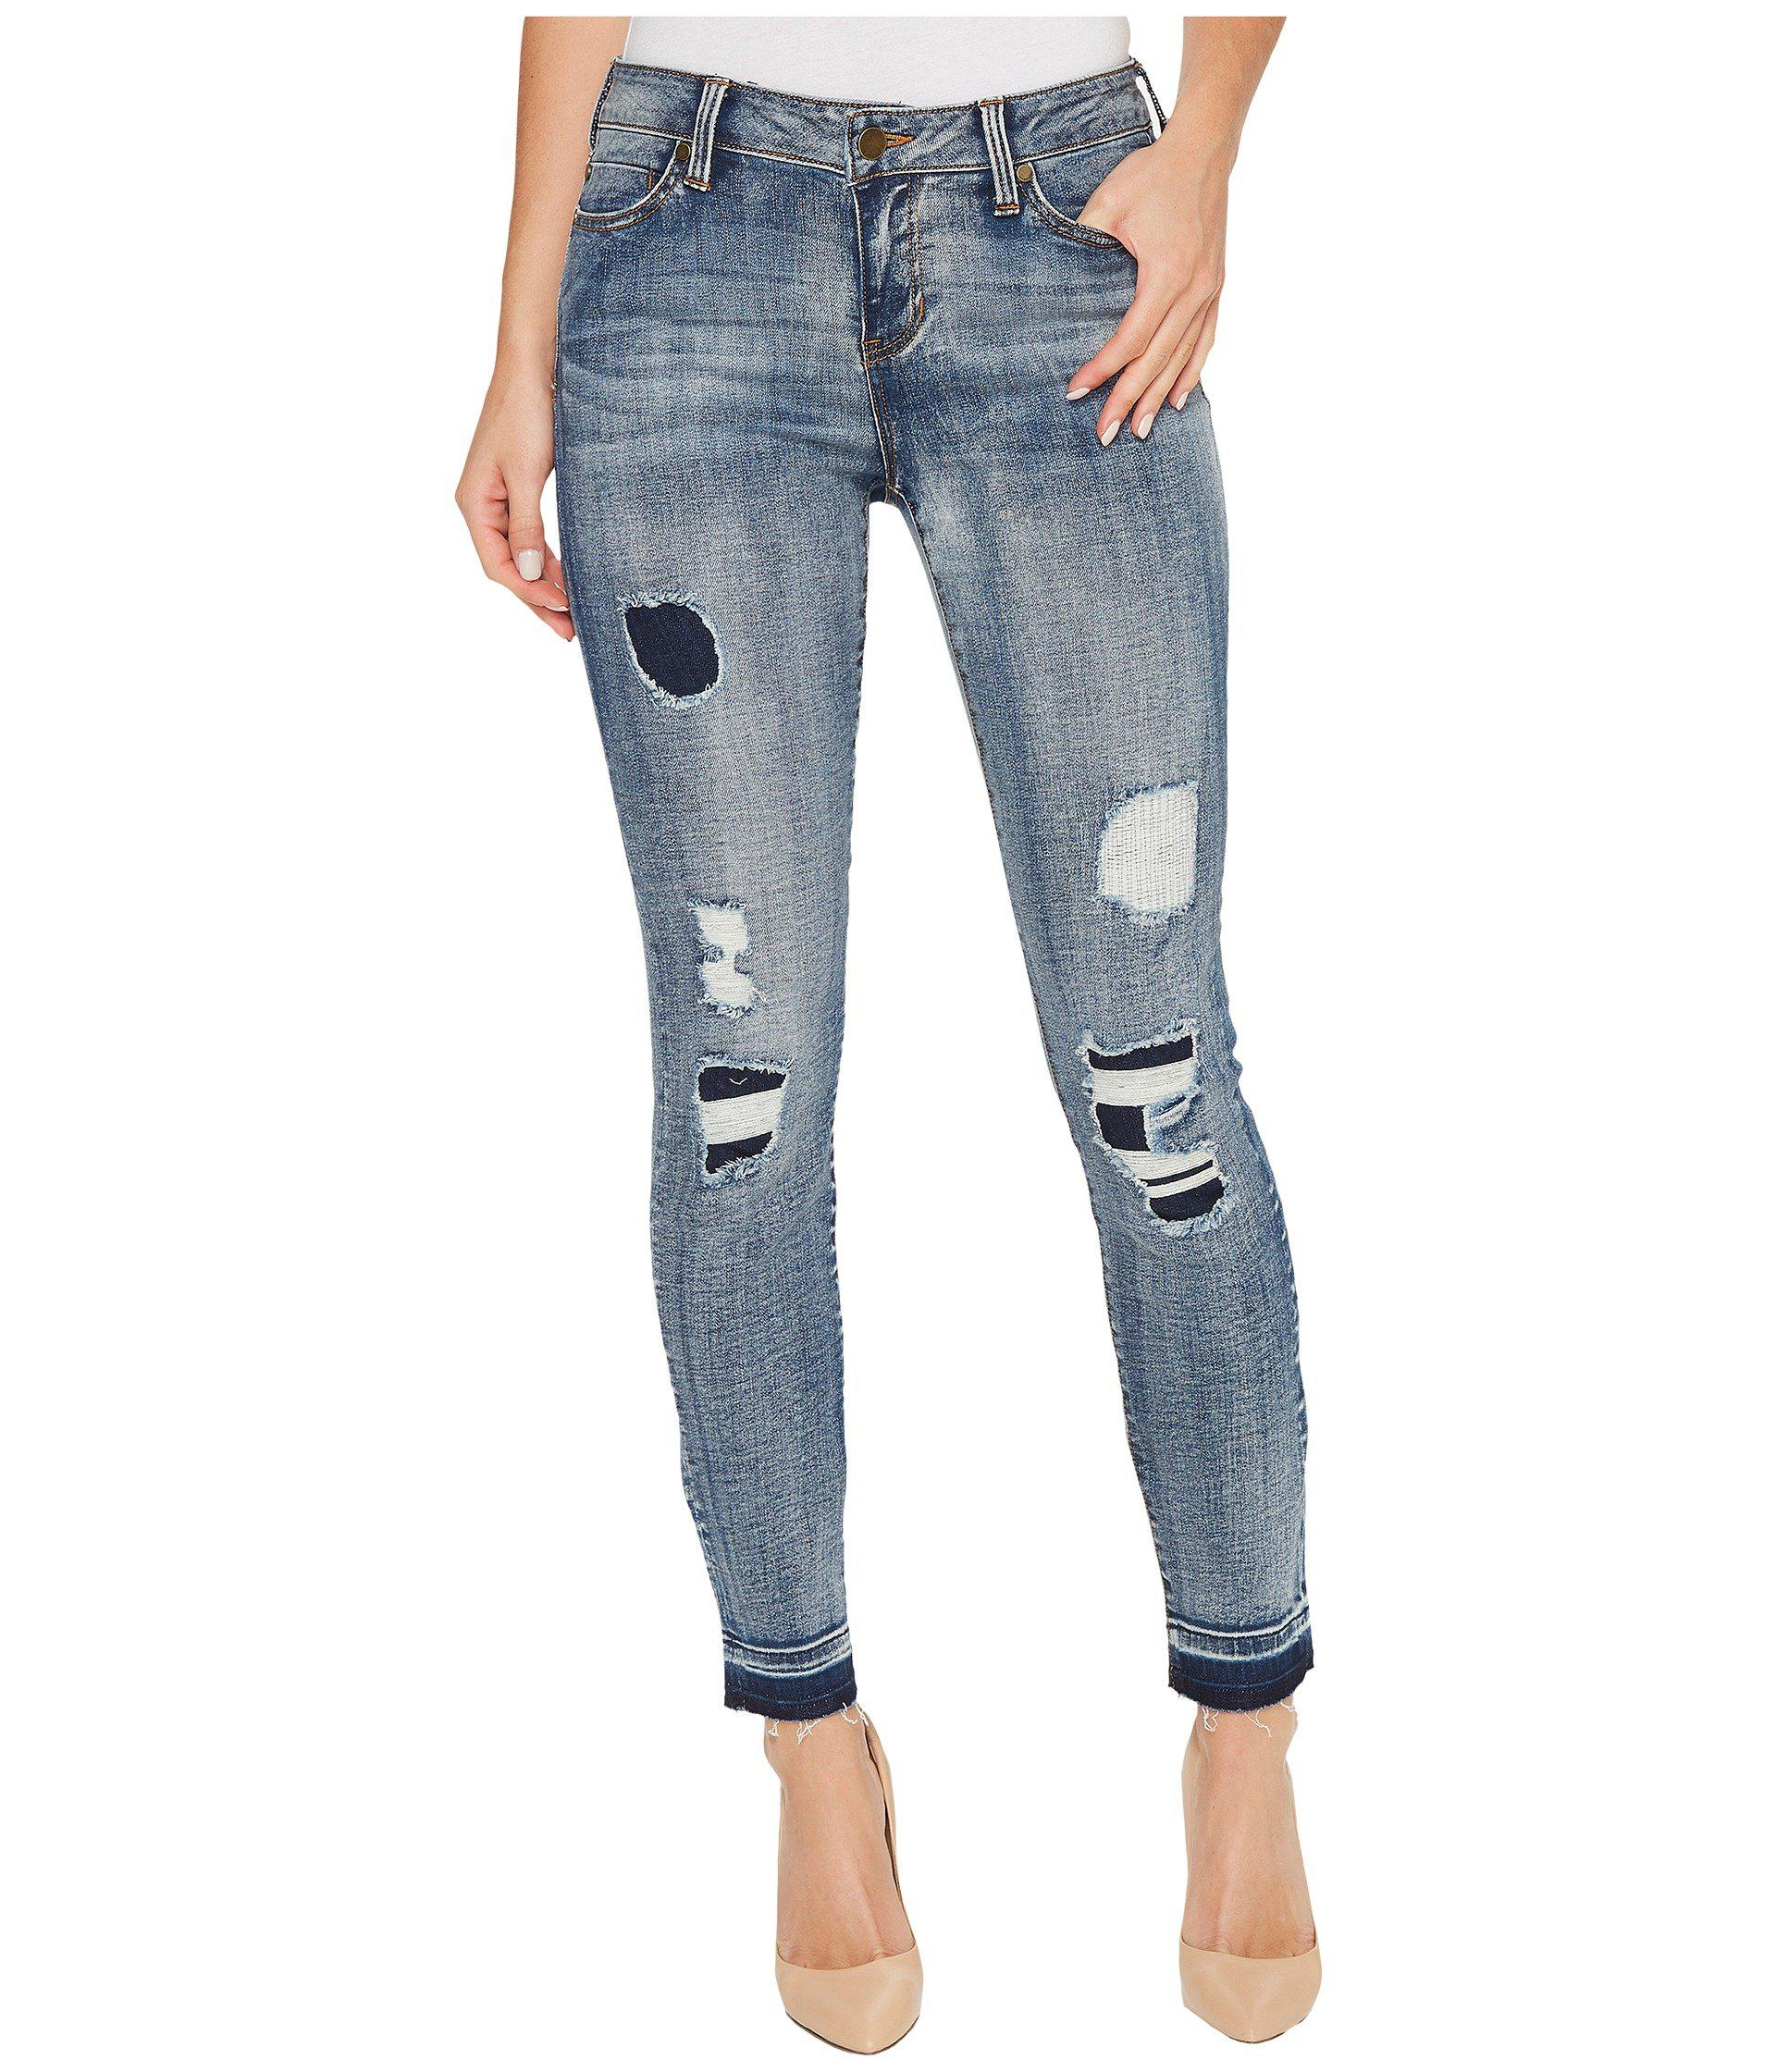 wash super lyst denim lvpl vintage in embroidered farrah flare jeans stretch liverpool by with comfort company comforter waist clothing beverly